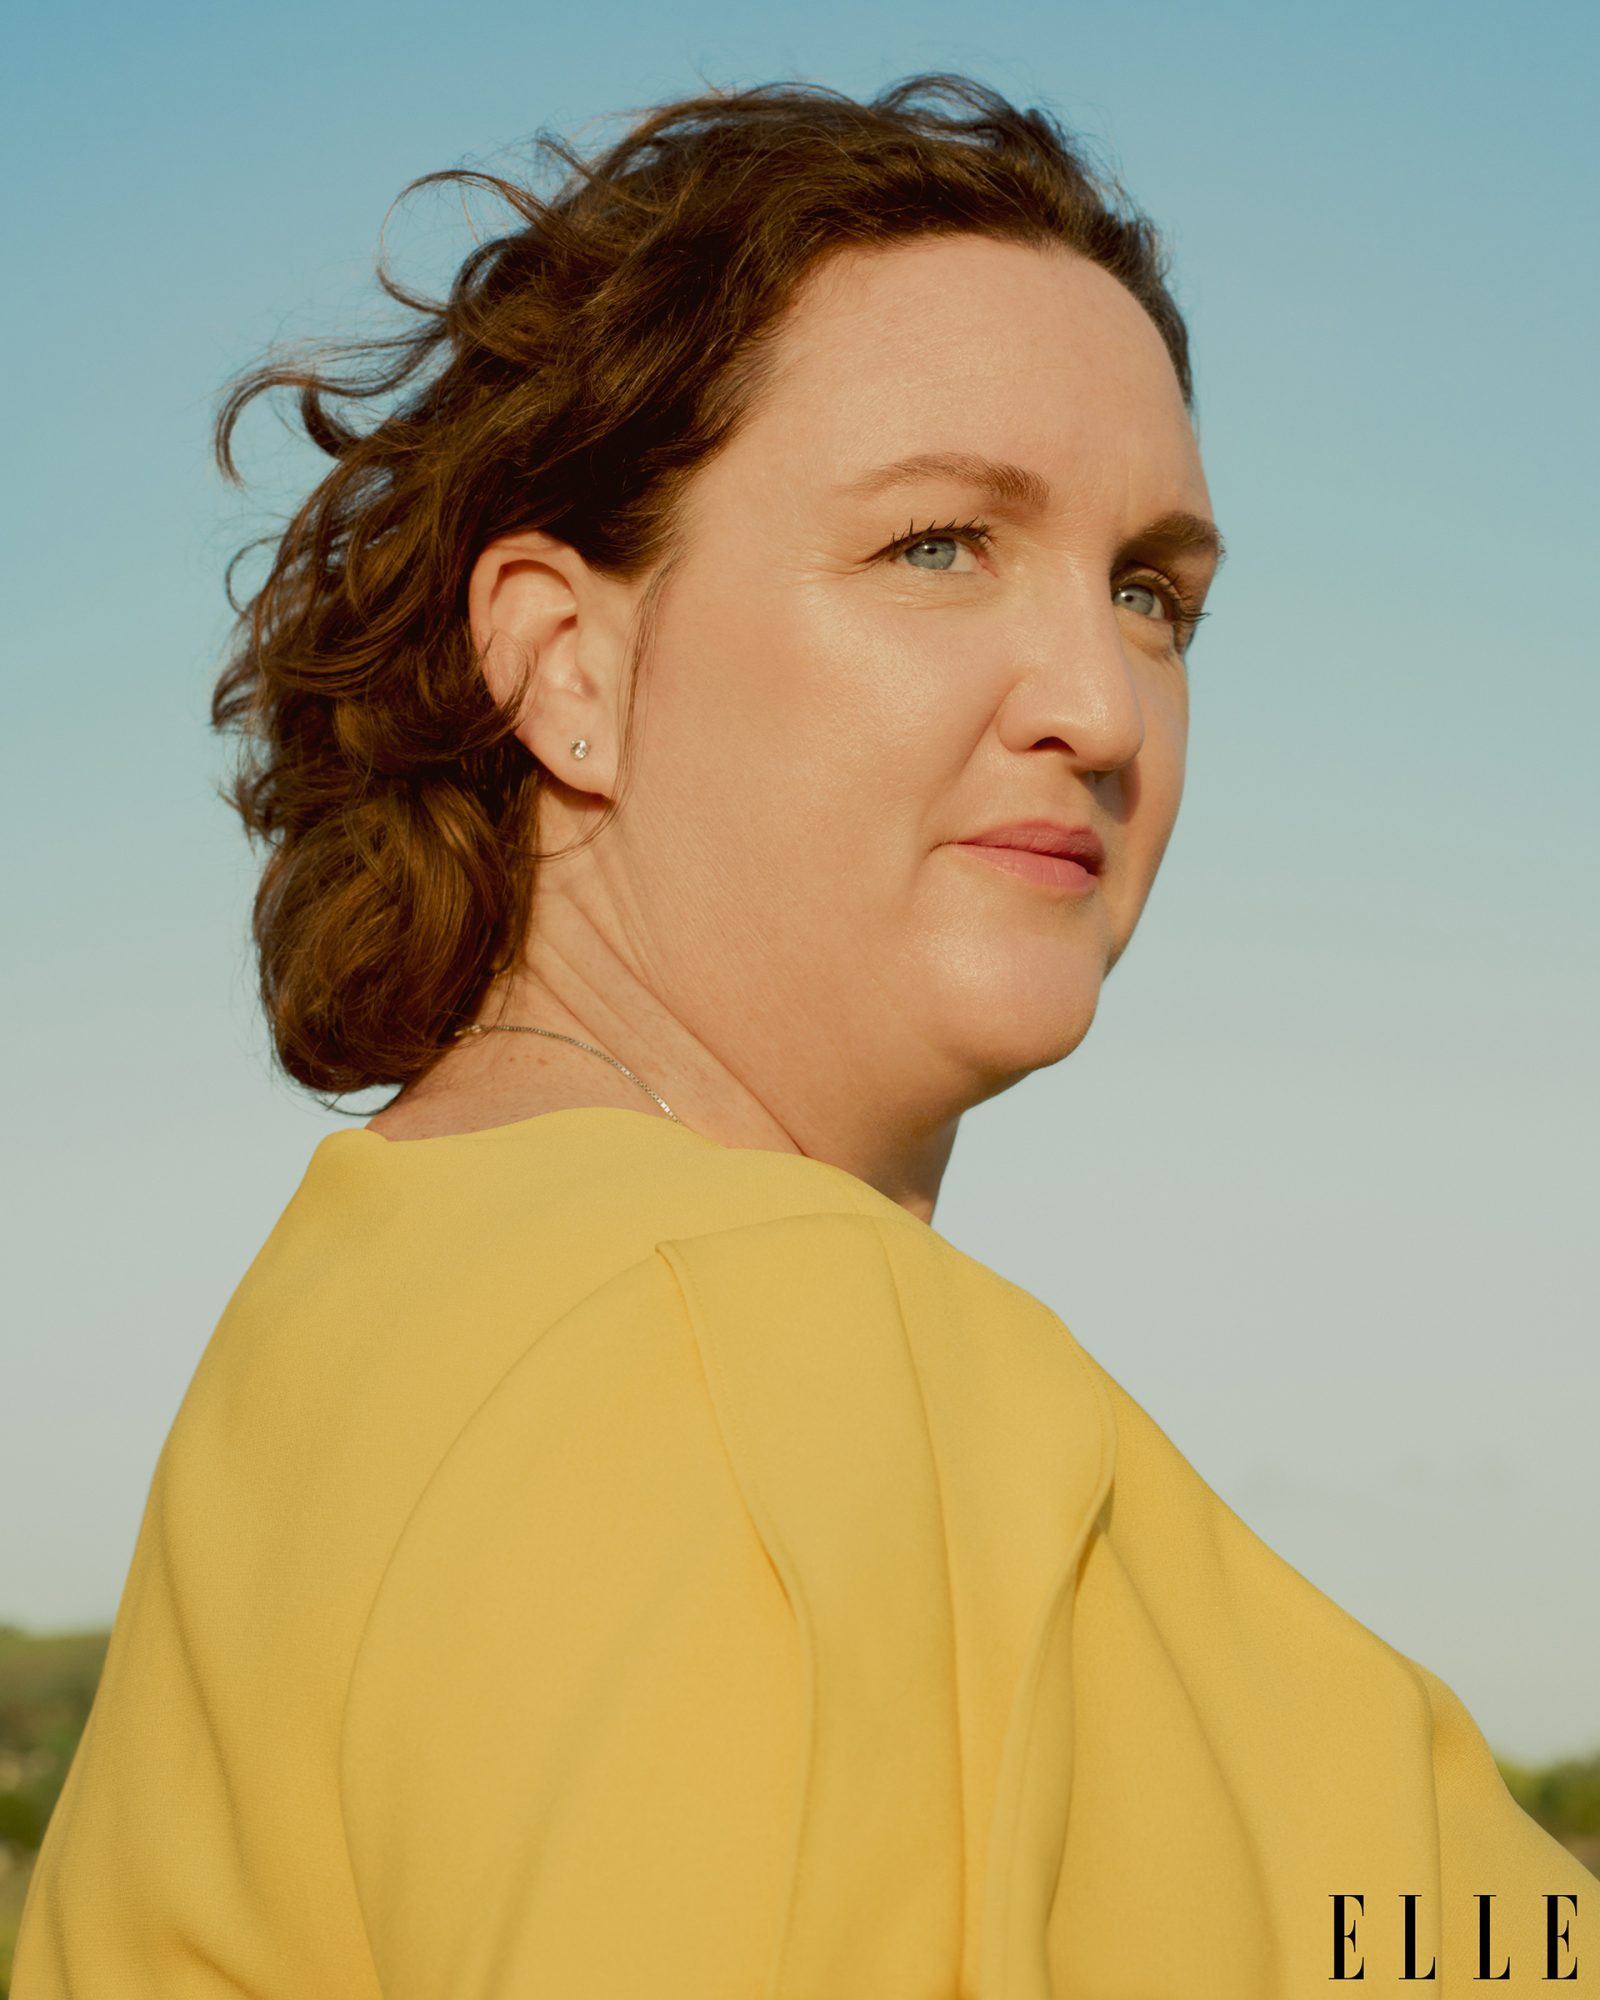 Representative Katie Porter, the freshman lawmaker and YouTube star, opens up in ELLE's August digital issue